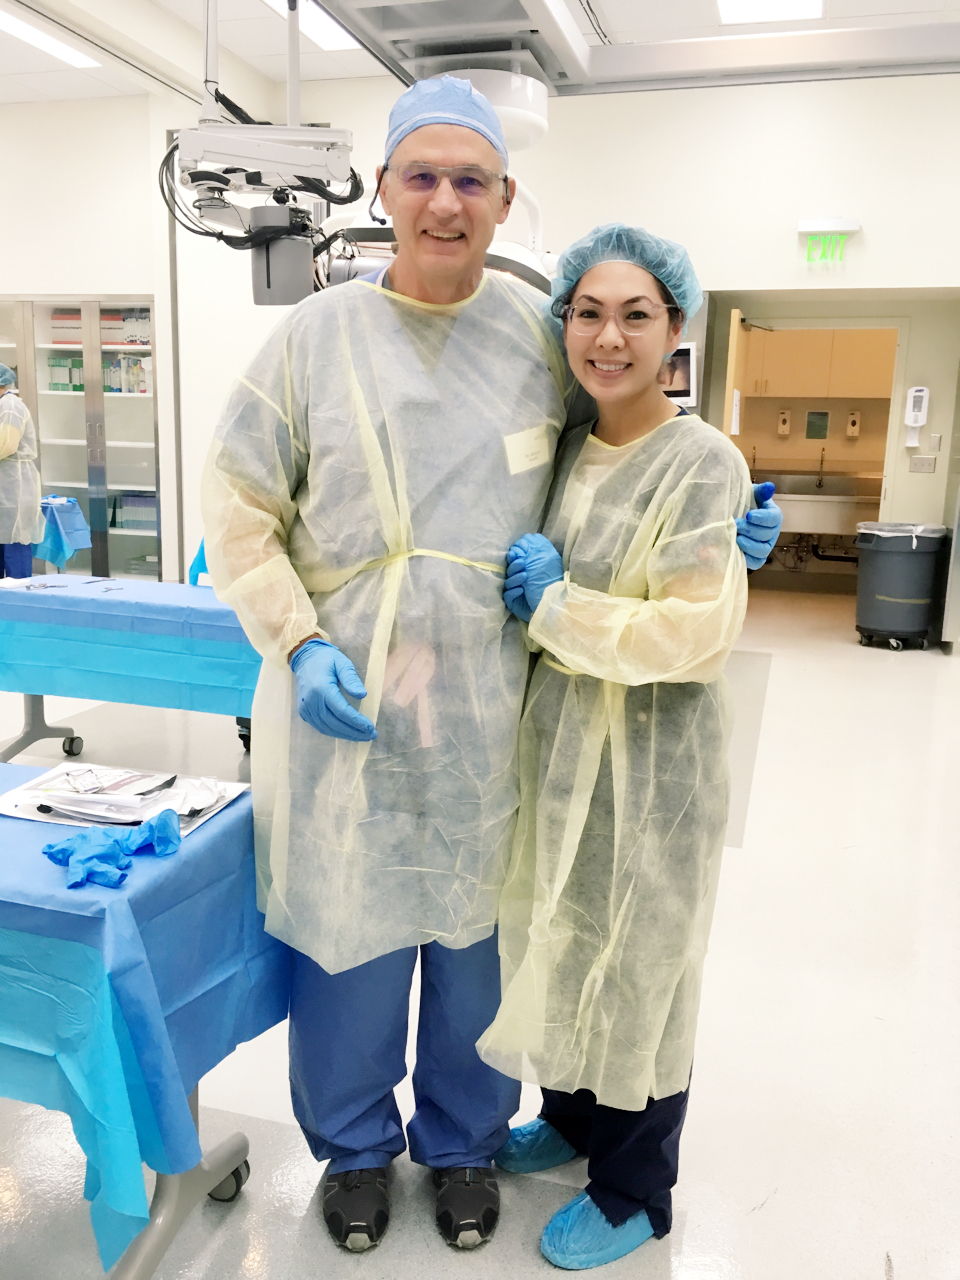 Through my journey I have met some amazing human beings like Dr. Chris Attinger (plastic surgeon from Georgetown). He's taught me some cool ways to heal a wound and his insights on limb reconstruction is just incredible. What an honor!